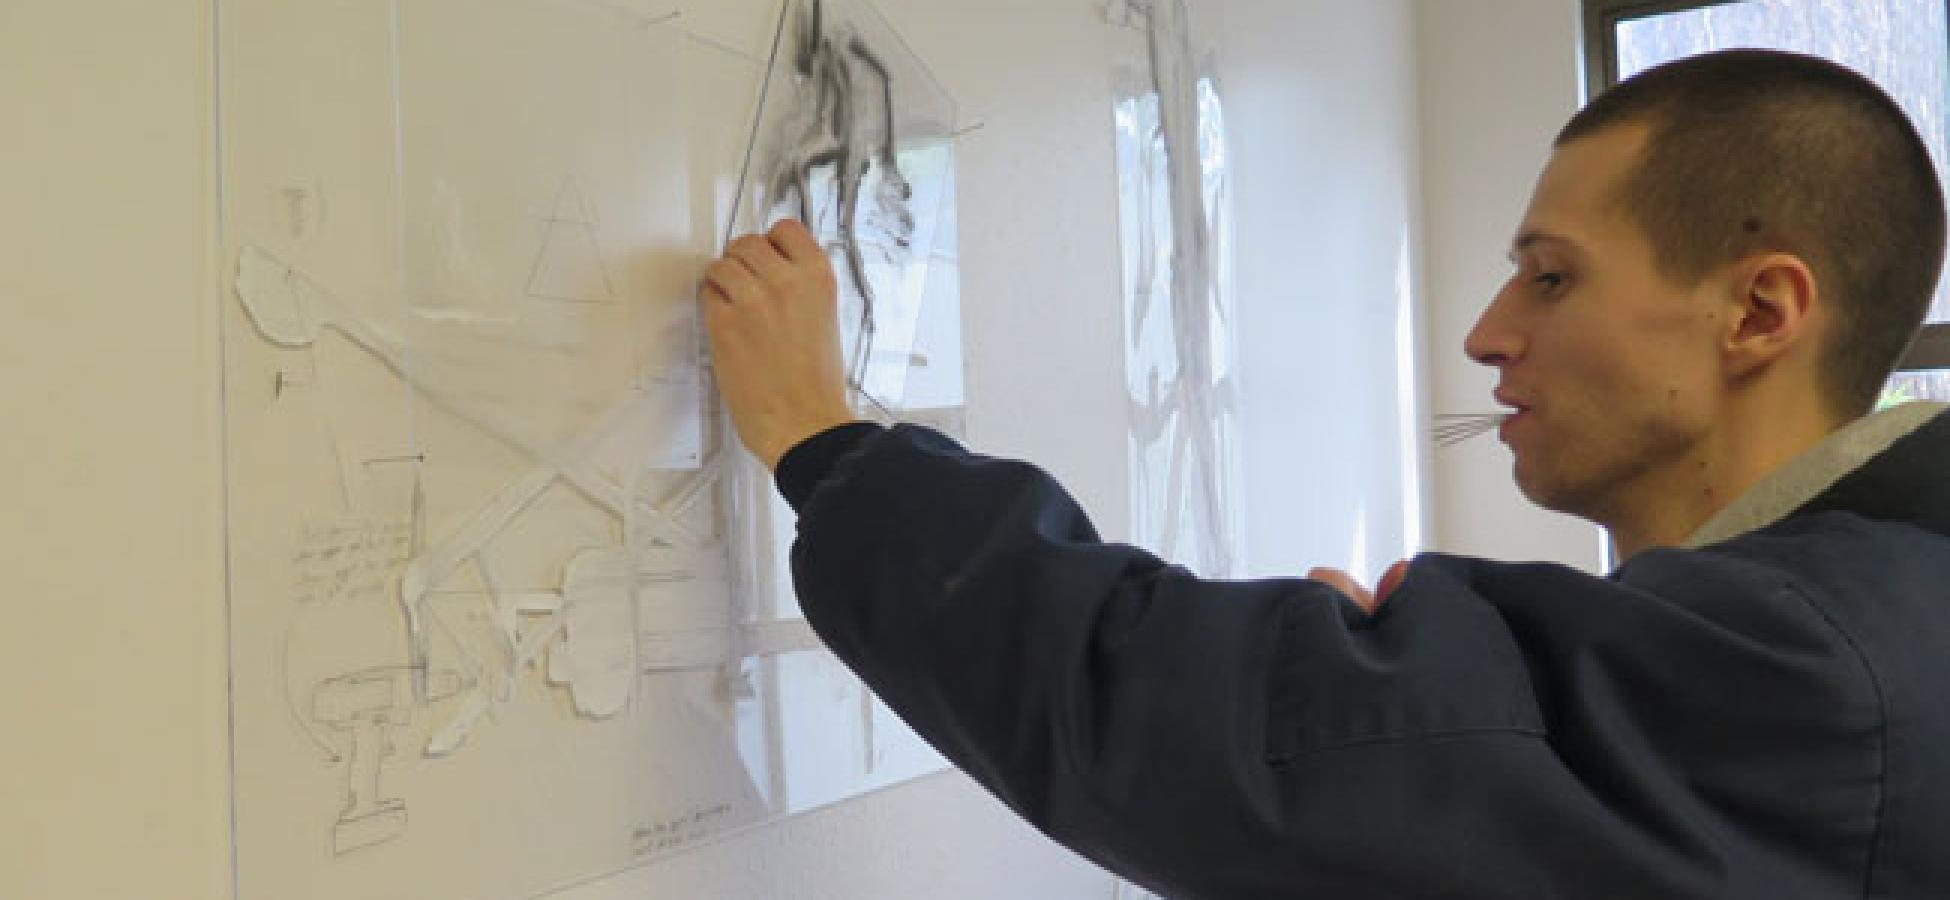 A student working on a drawing on the wall